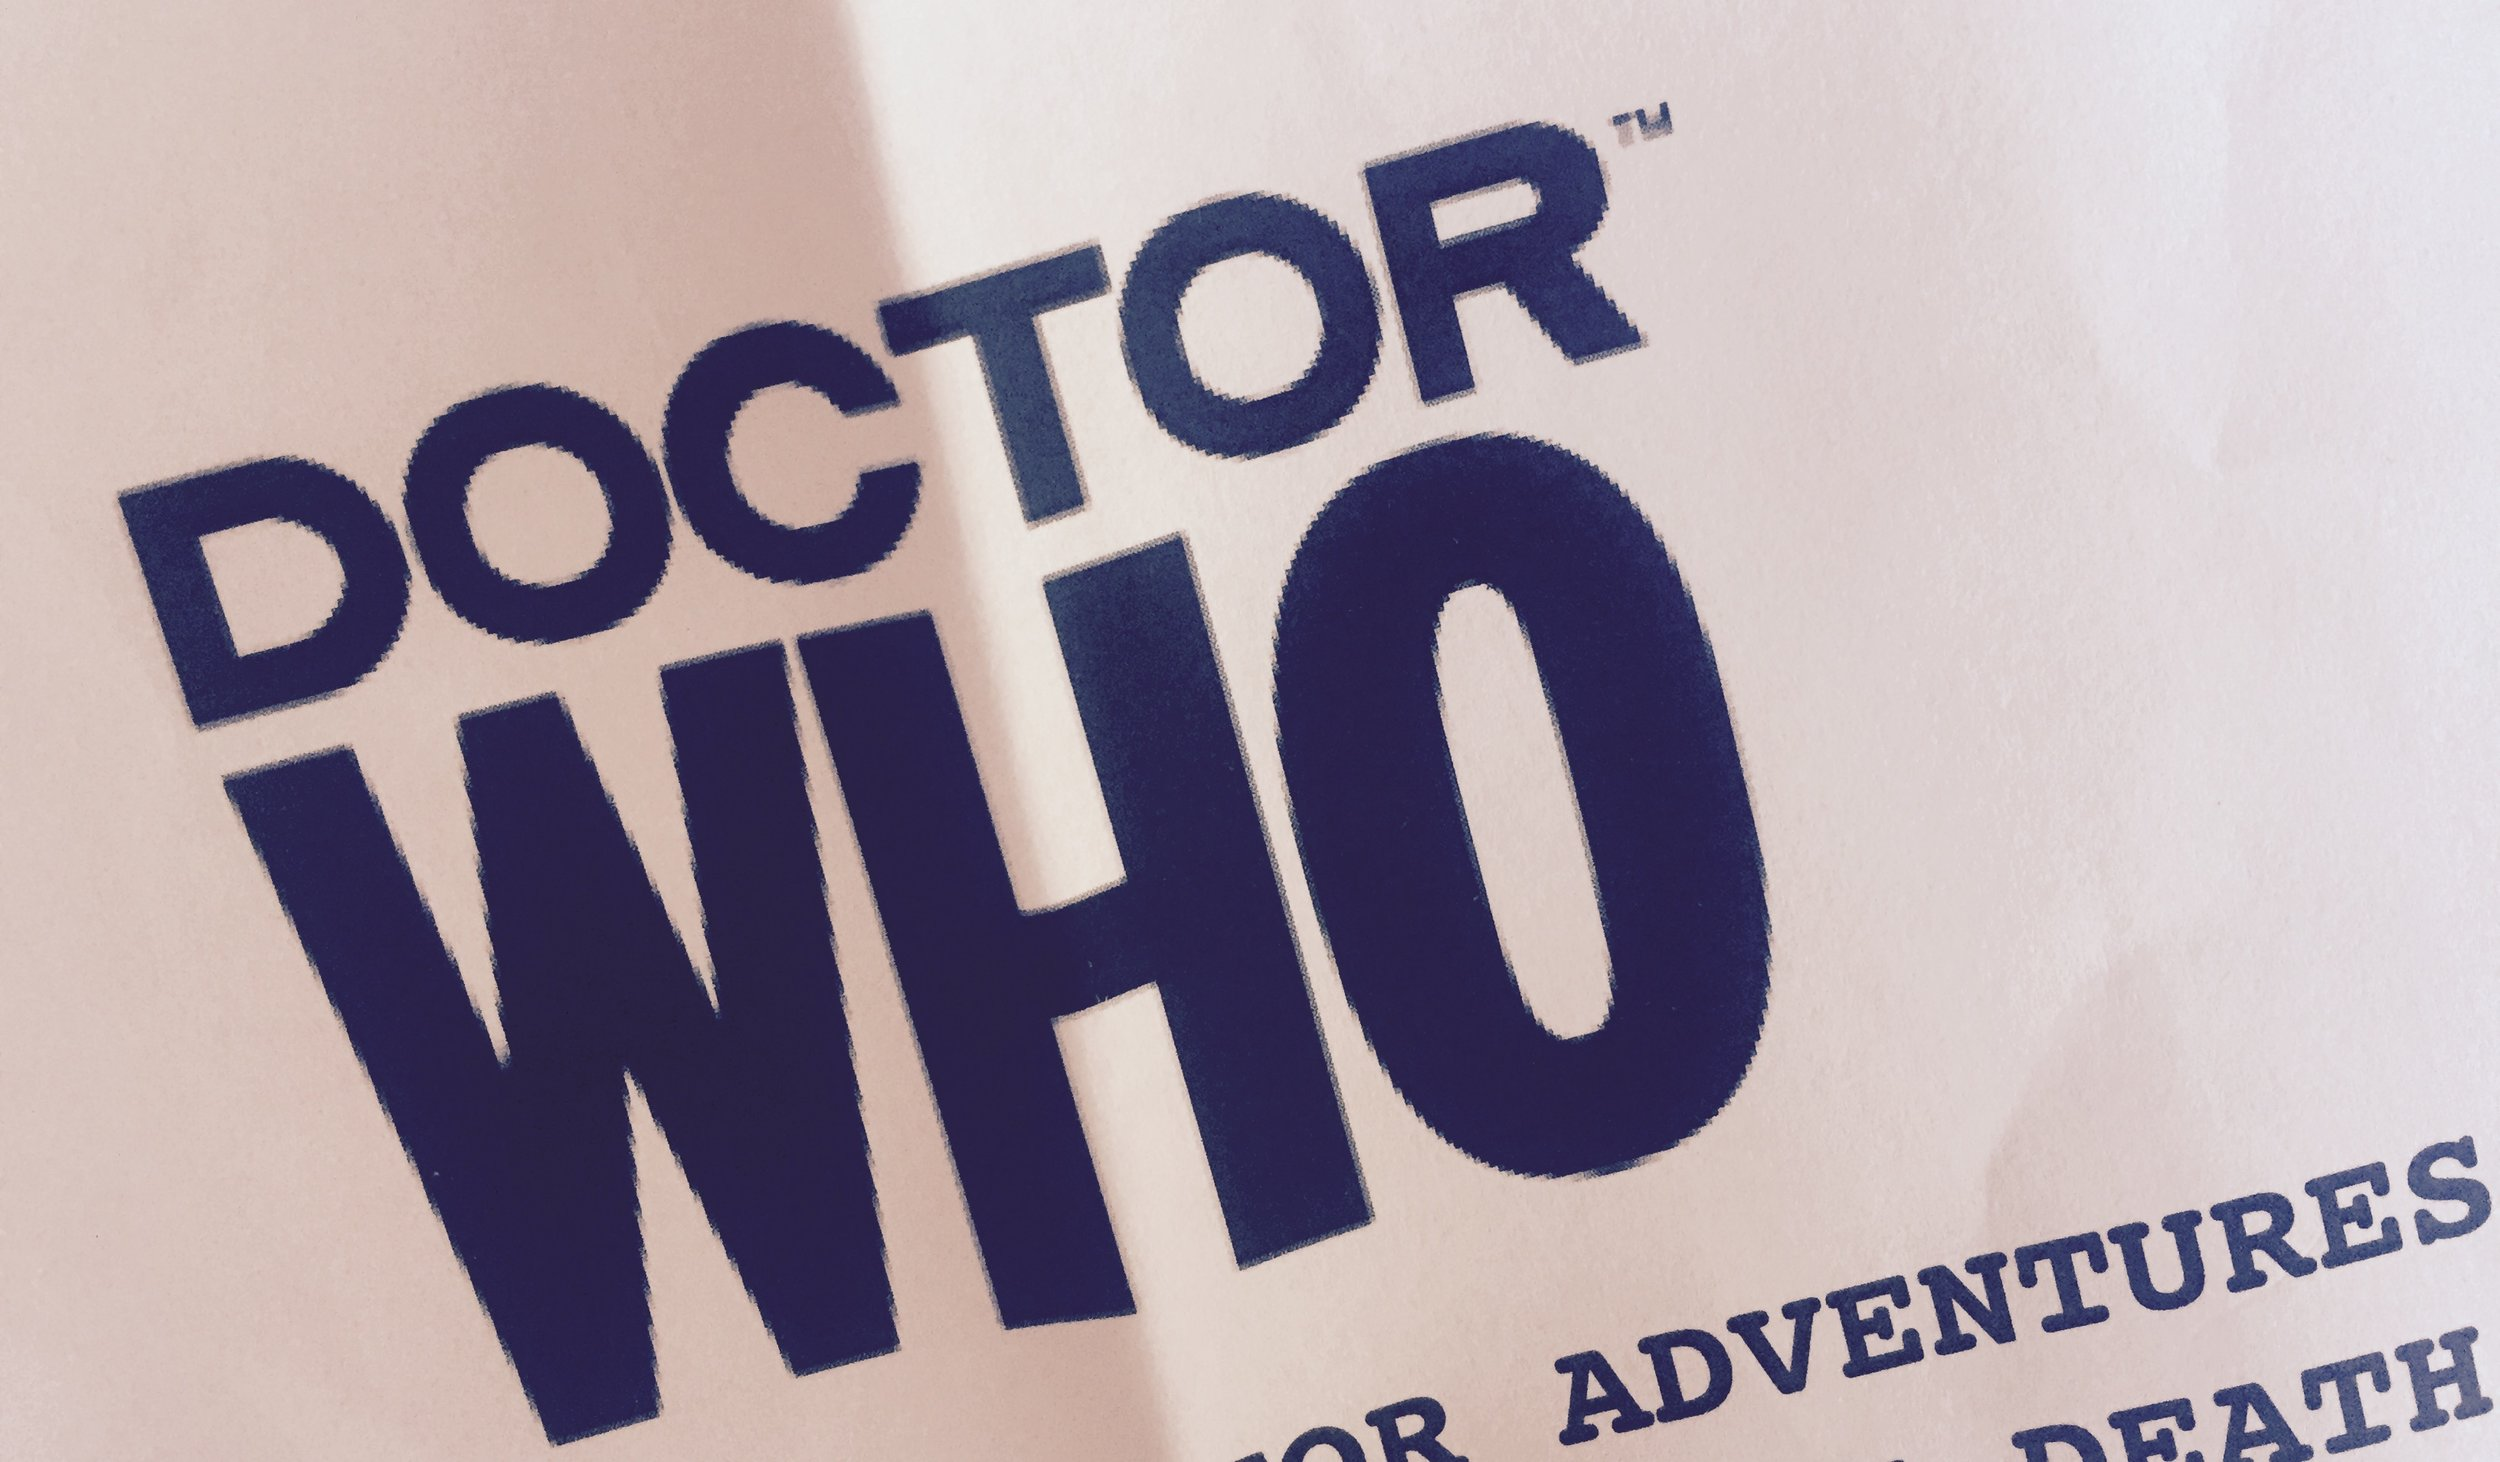 September 2017 - Another Doctor Who recording for Big Finish. Written by John Dorney and directed by Nicholas Briggs.